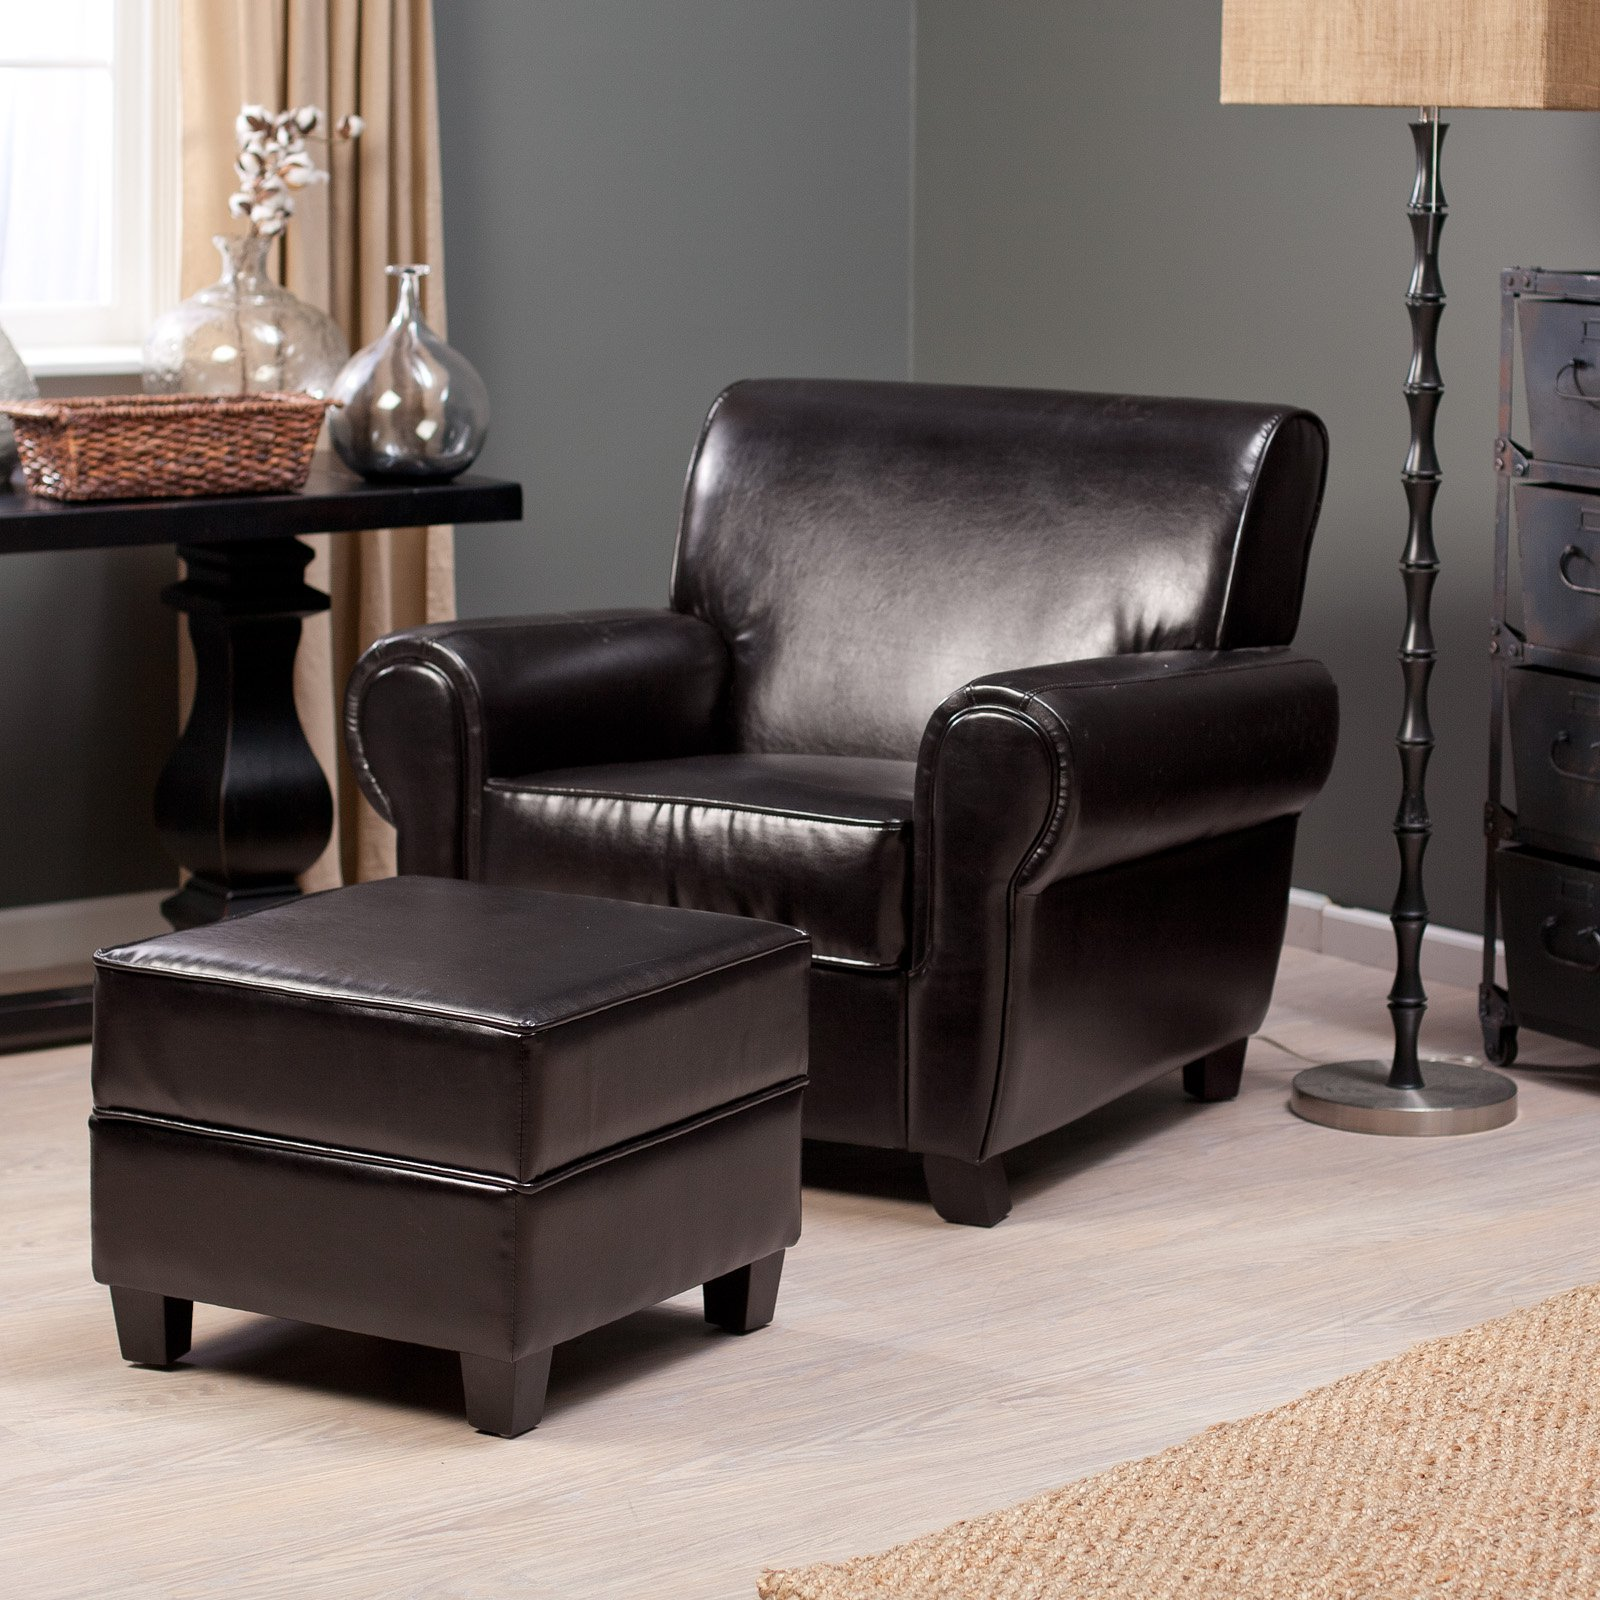 Bernhardt Chairs | Accent Arm Chairs | Leather Chair and Ottoman